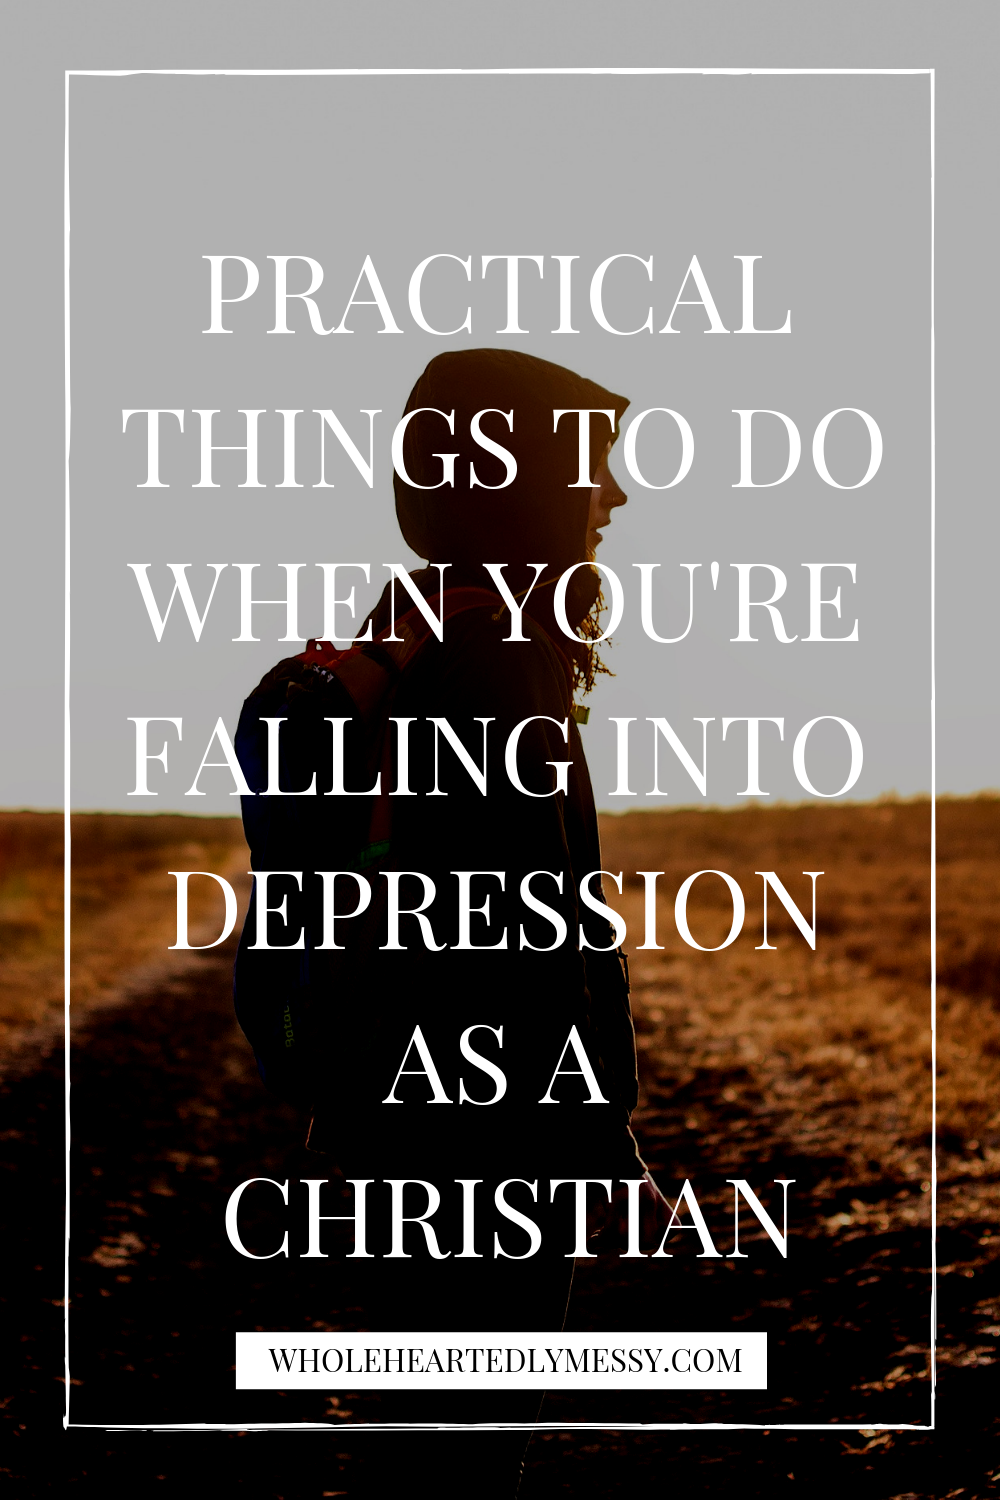 PRACTICAL THINGS TO DO WHEN YOU'RE FALLING INTO DEPRESSION AS A CHRISTIAN